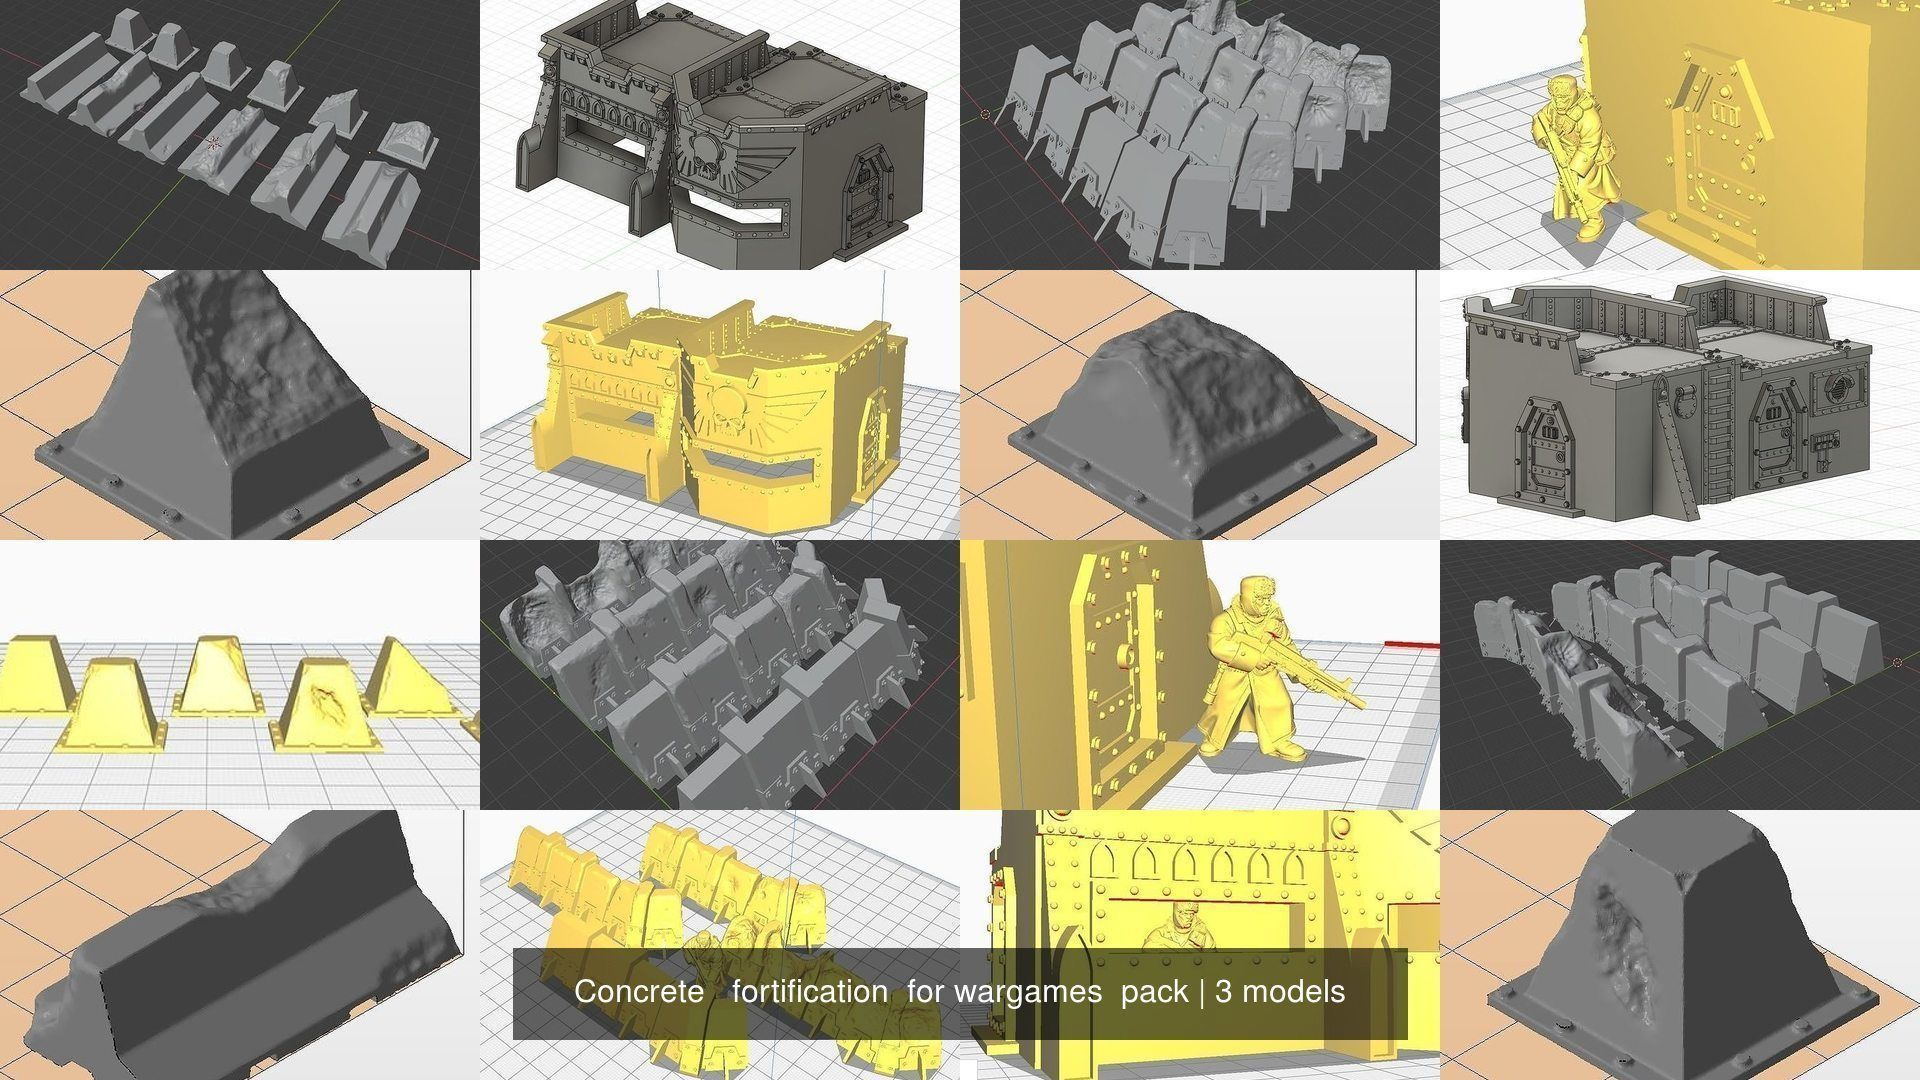 Concrete   fortification  for wargames  pack